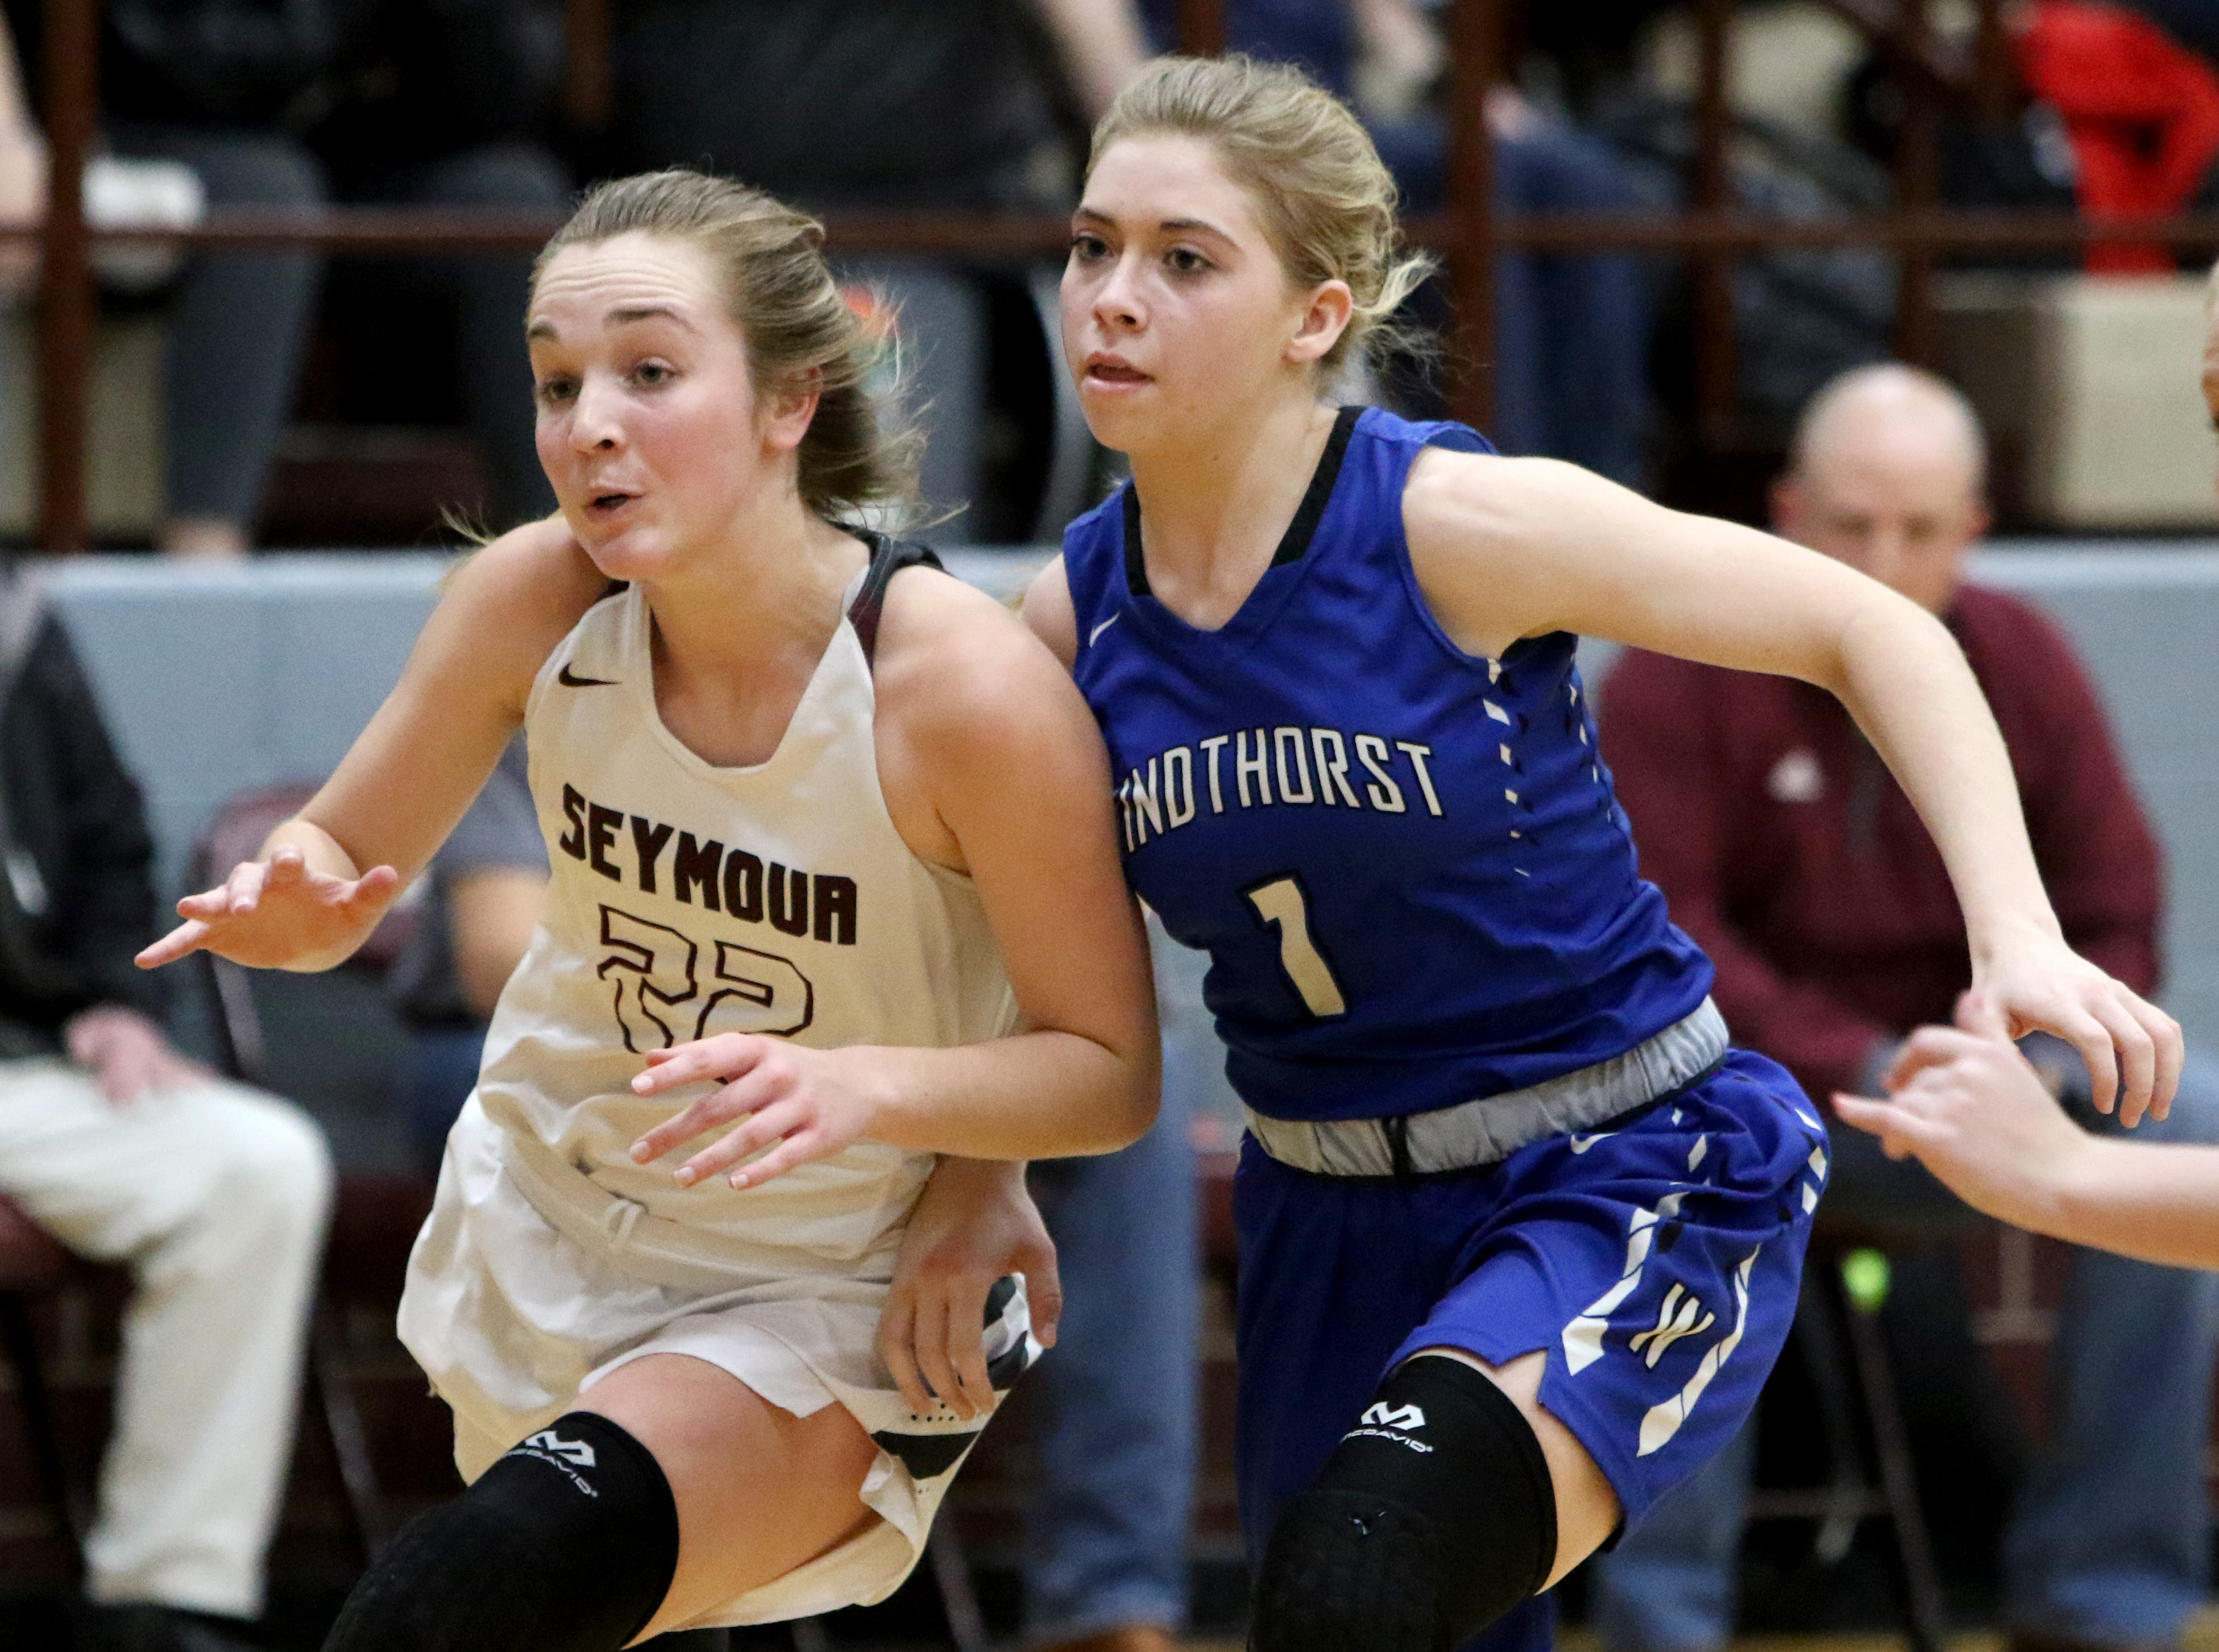 Seymour's Channing Stroebel, left, and Windthorst's Kora Pennartz fight for position Tuesday, Jan.8, 2019, in Seymour.